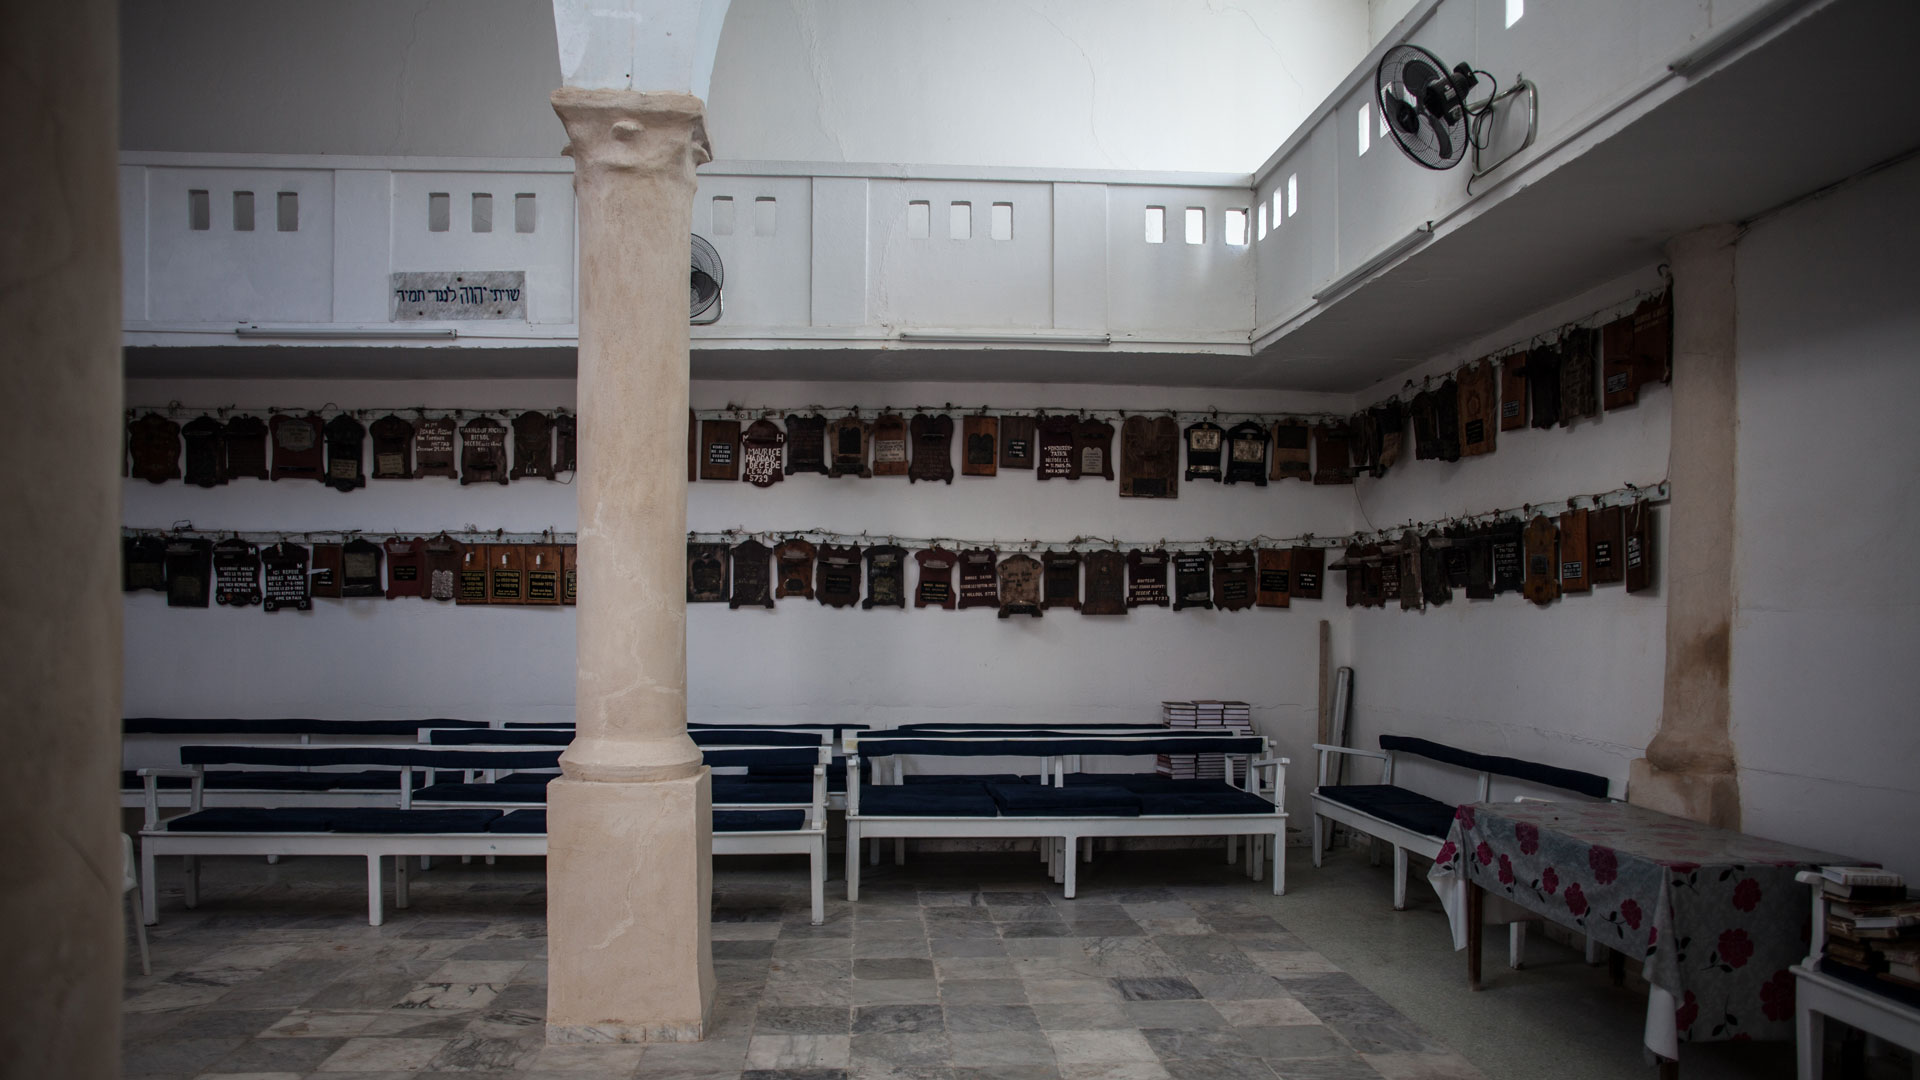 02-portrait-yves-tunisien-juif-synagogue-detail-inkyfada